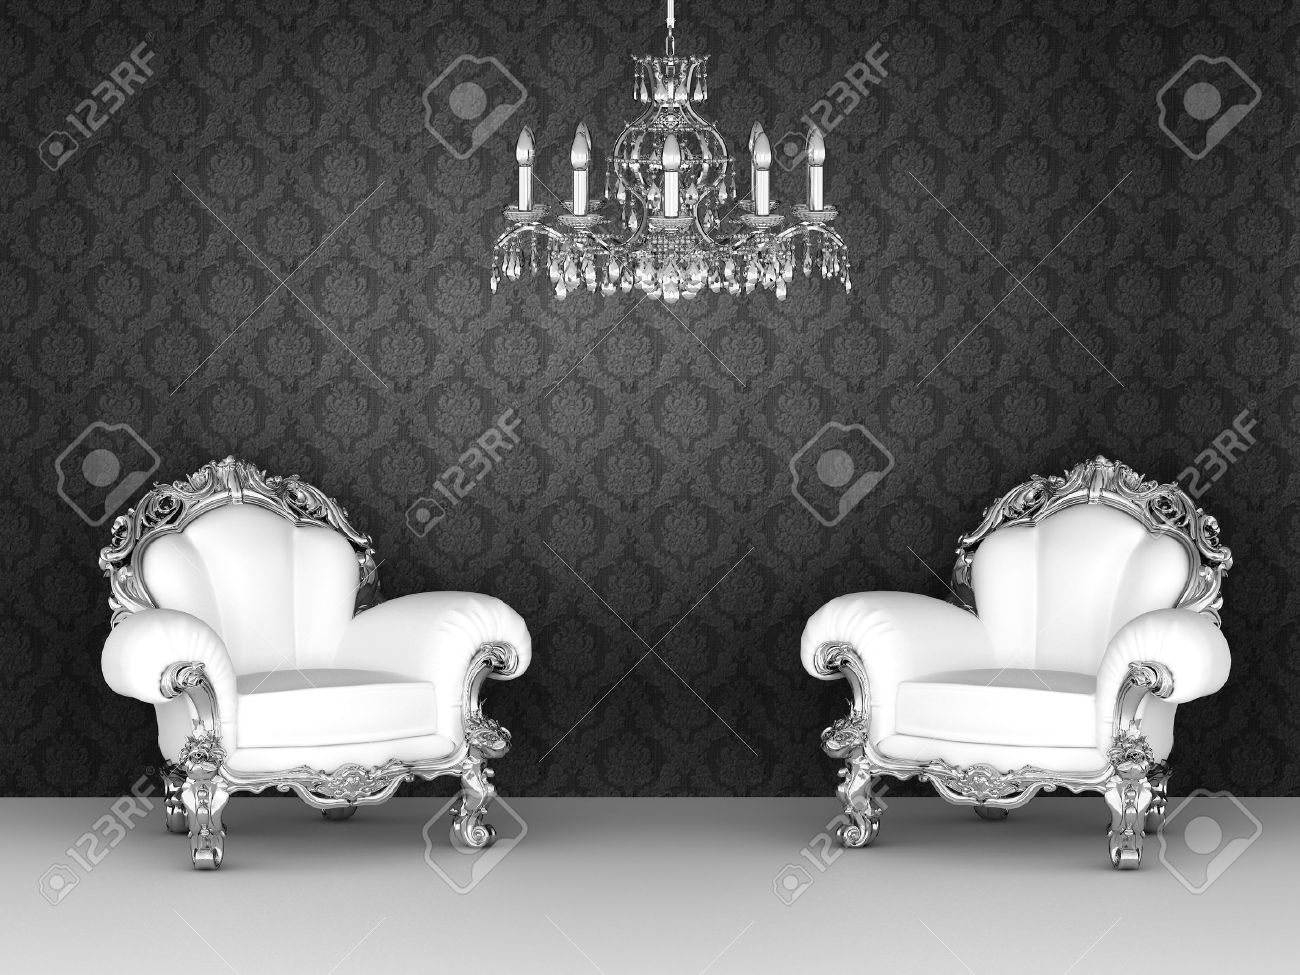 Luxurious armchairs in baroque interior. Ornament wallpapers. Stock Photo - 10468588